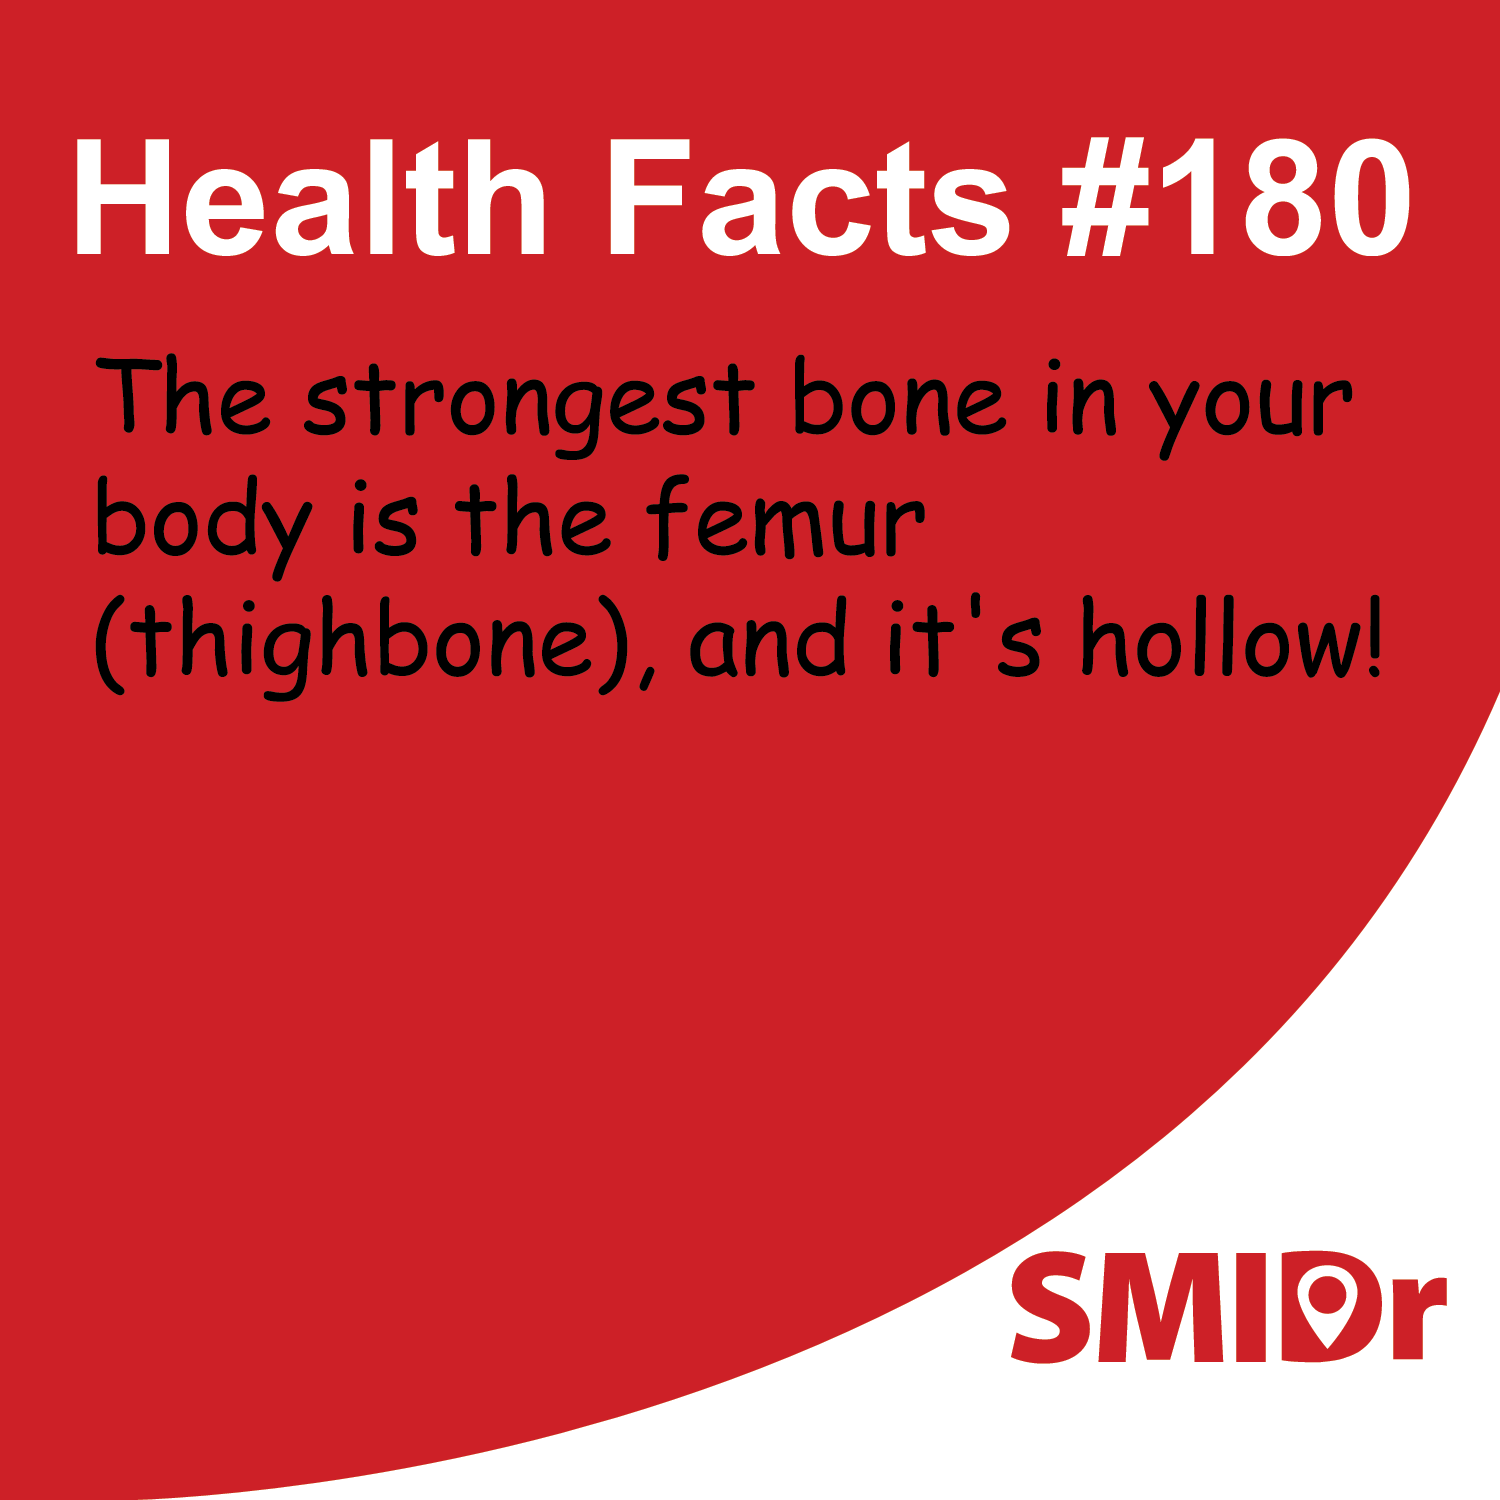 Didyouknow The Strongest Bone In Your Body Is The Femur Thighbone